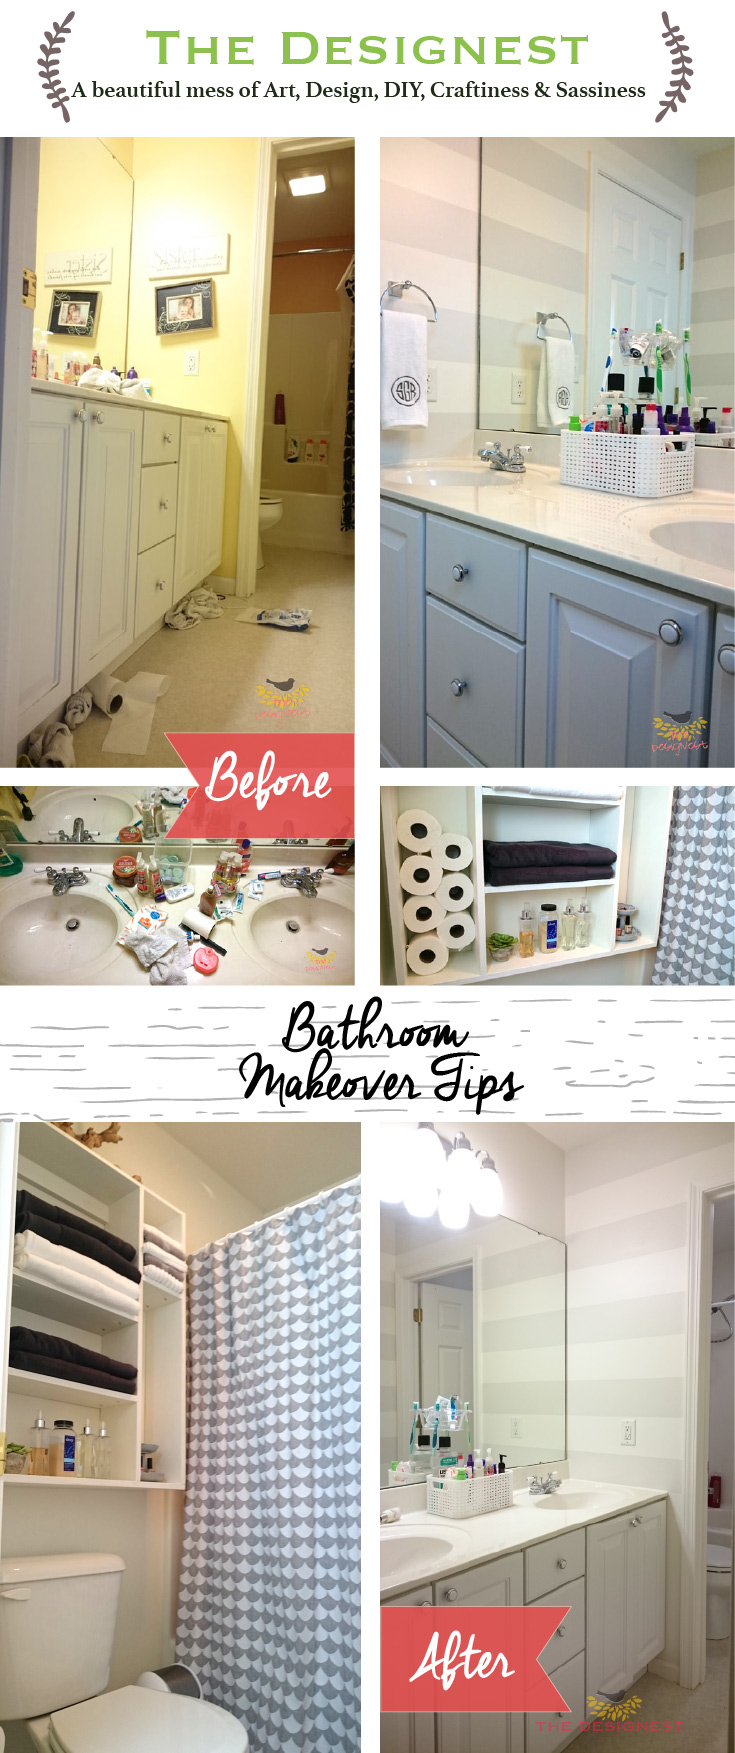 Bathroom Makeover | Tips to make a small bathroom feel bigger.